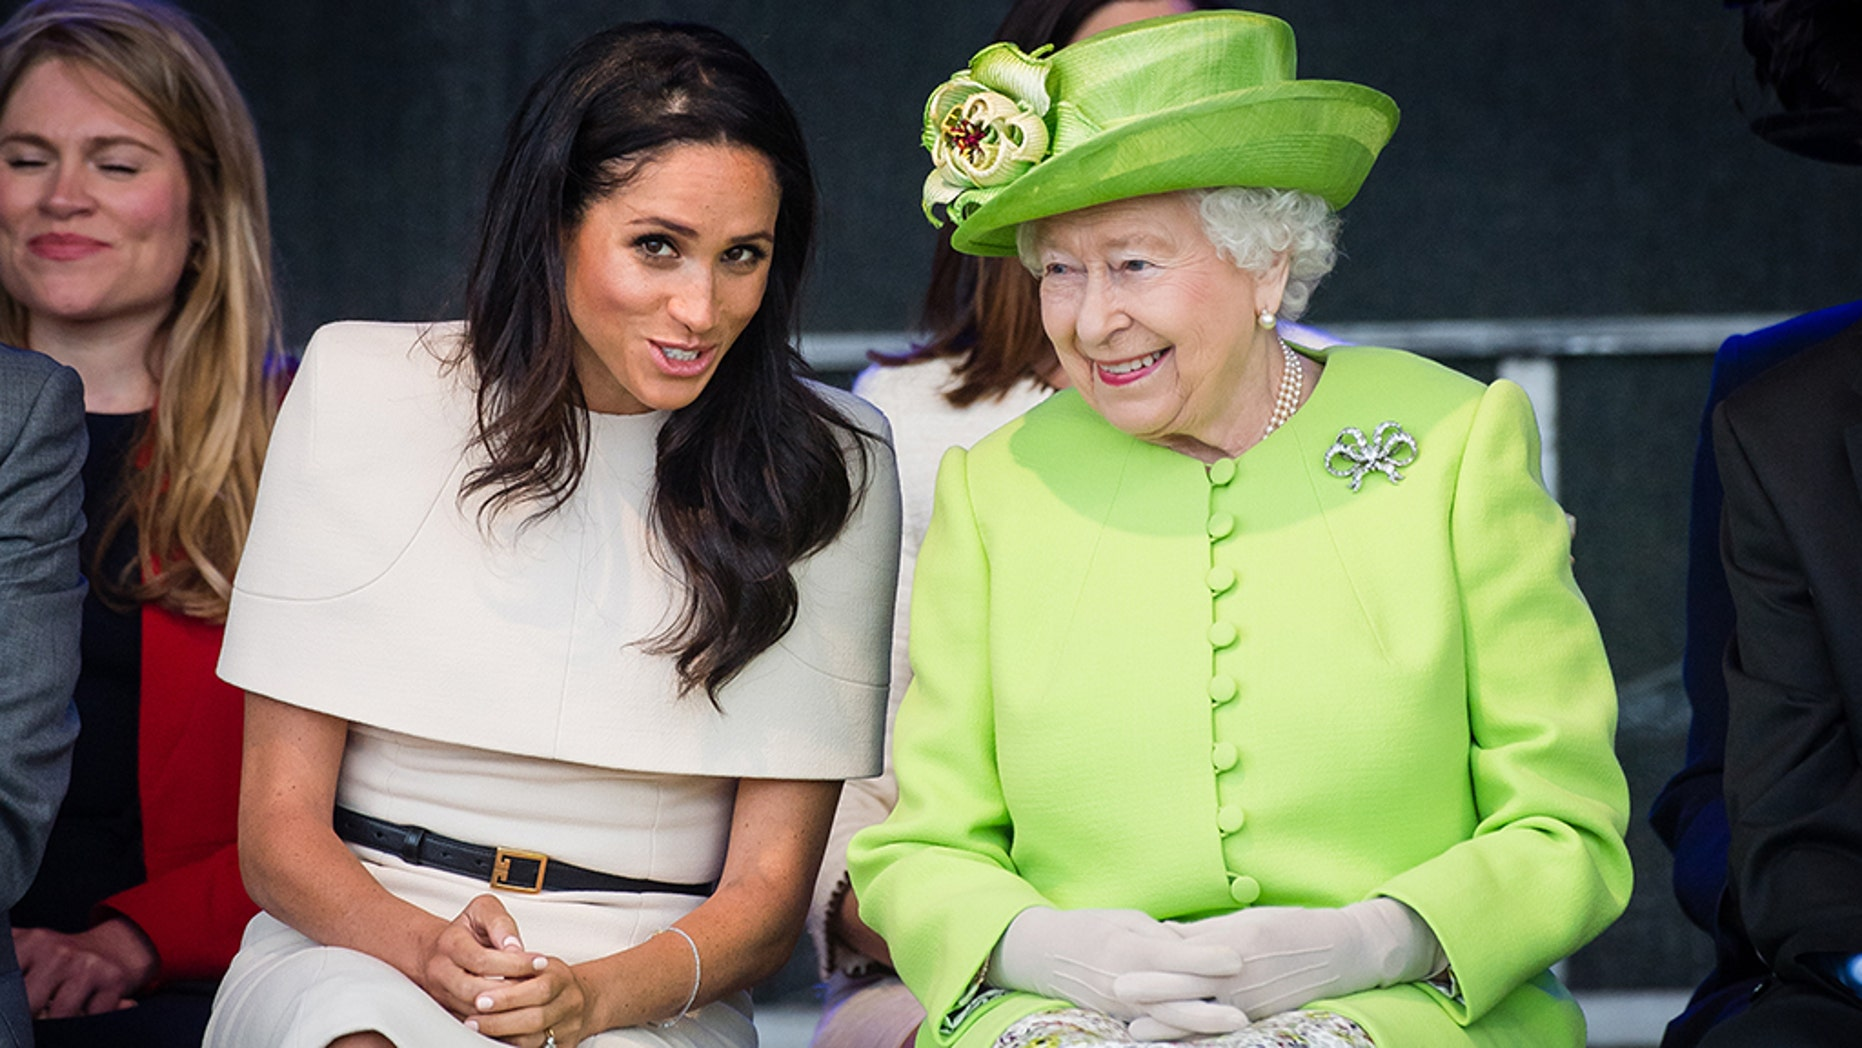 The Queen reportedly gifted Markle a pair of pearl earrings to match her own beloved pair.